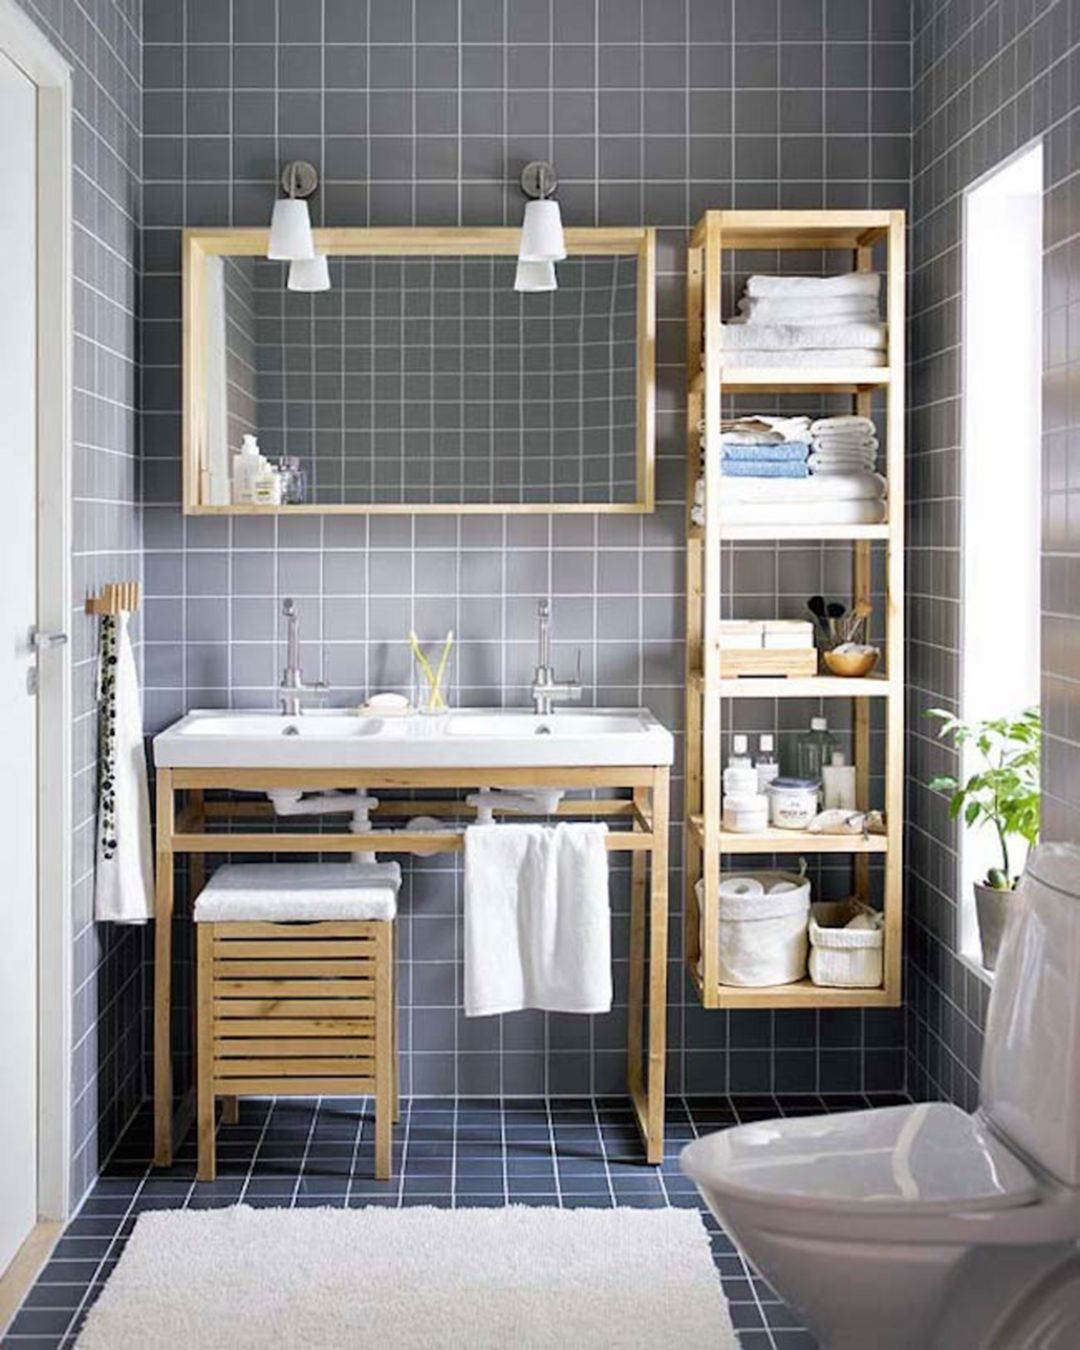 10 Charming Small Bathroom Design Ideas and Decorations for Your Apartment